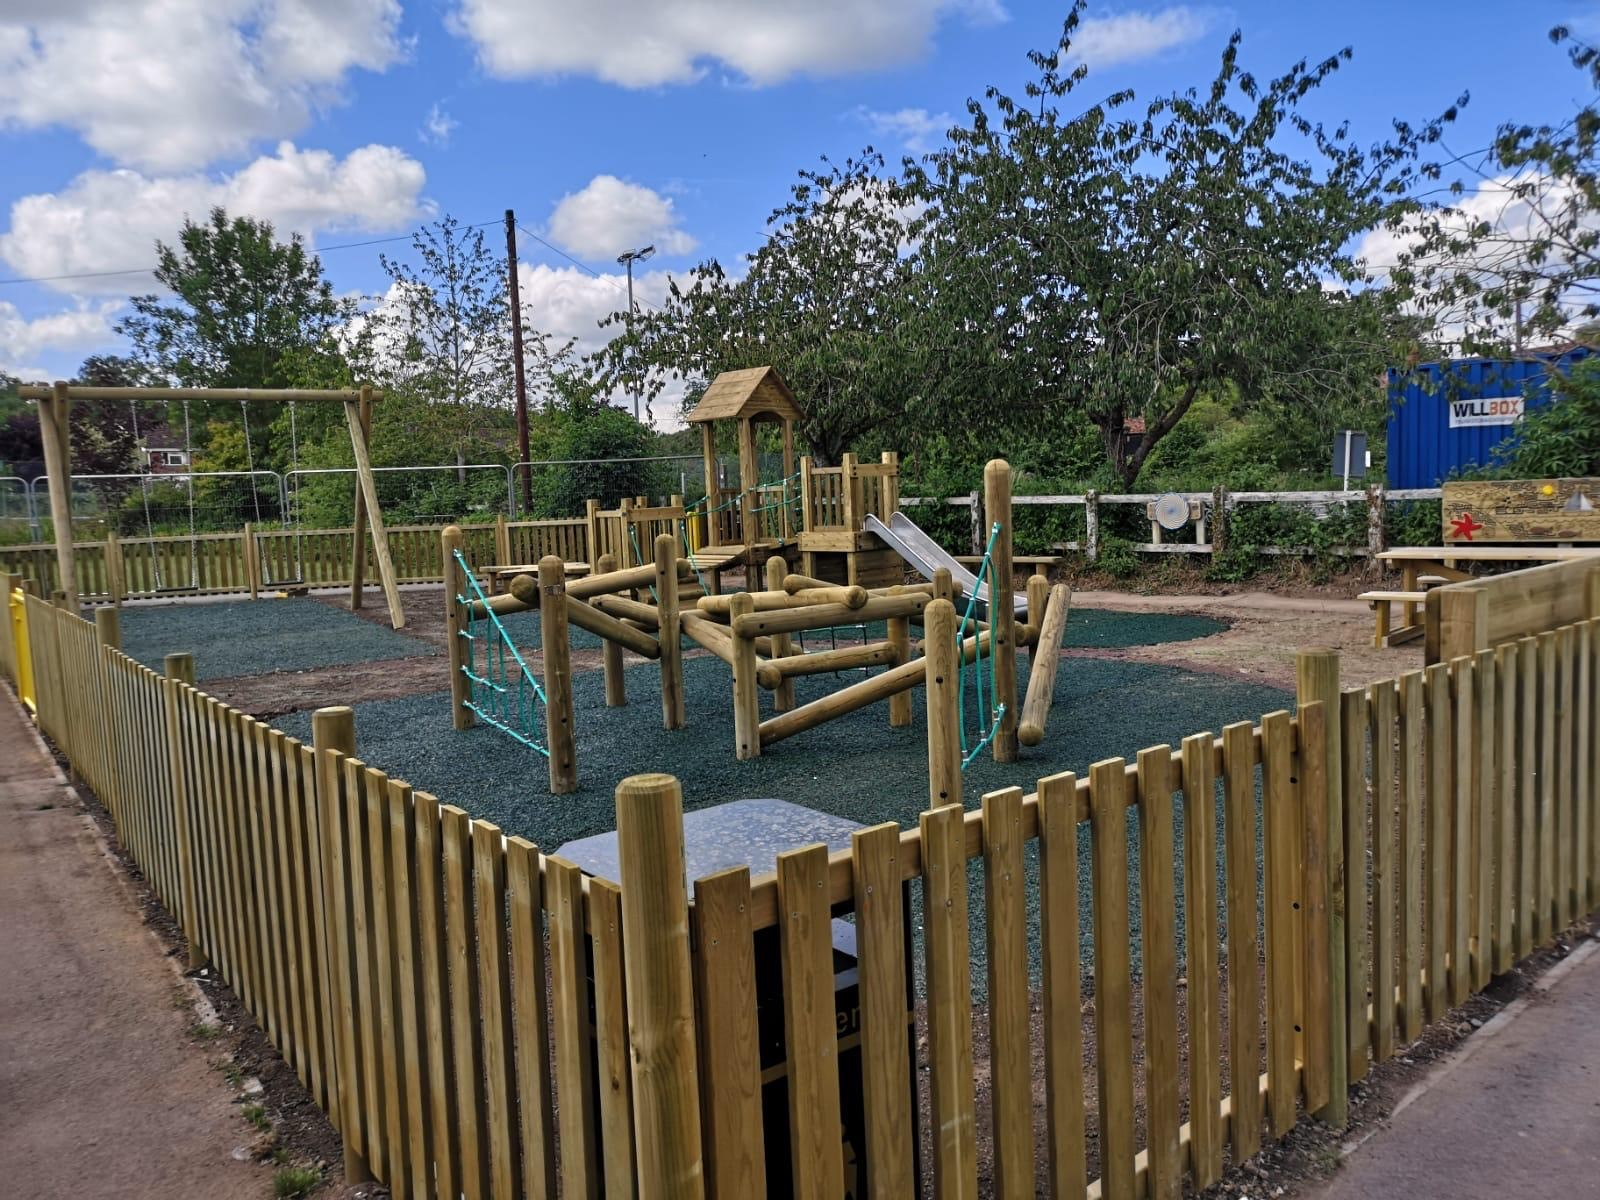 Fencing, play tower, swings and hawks nest